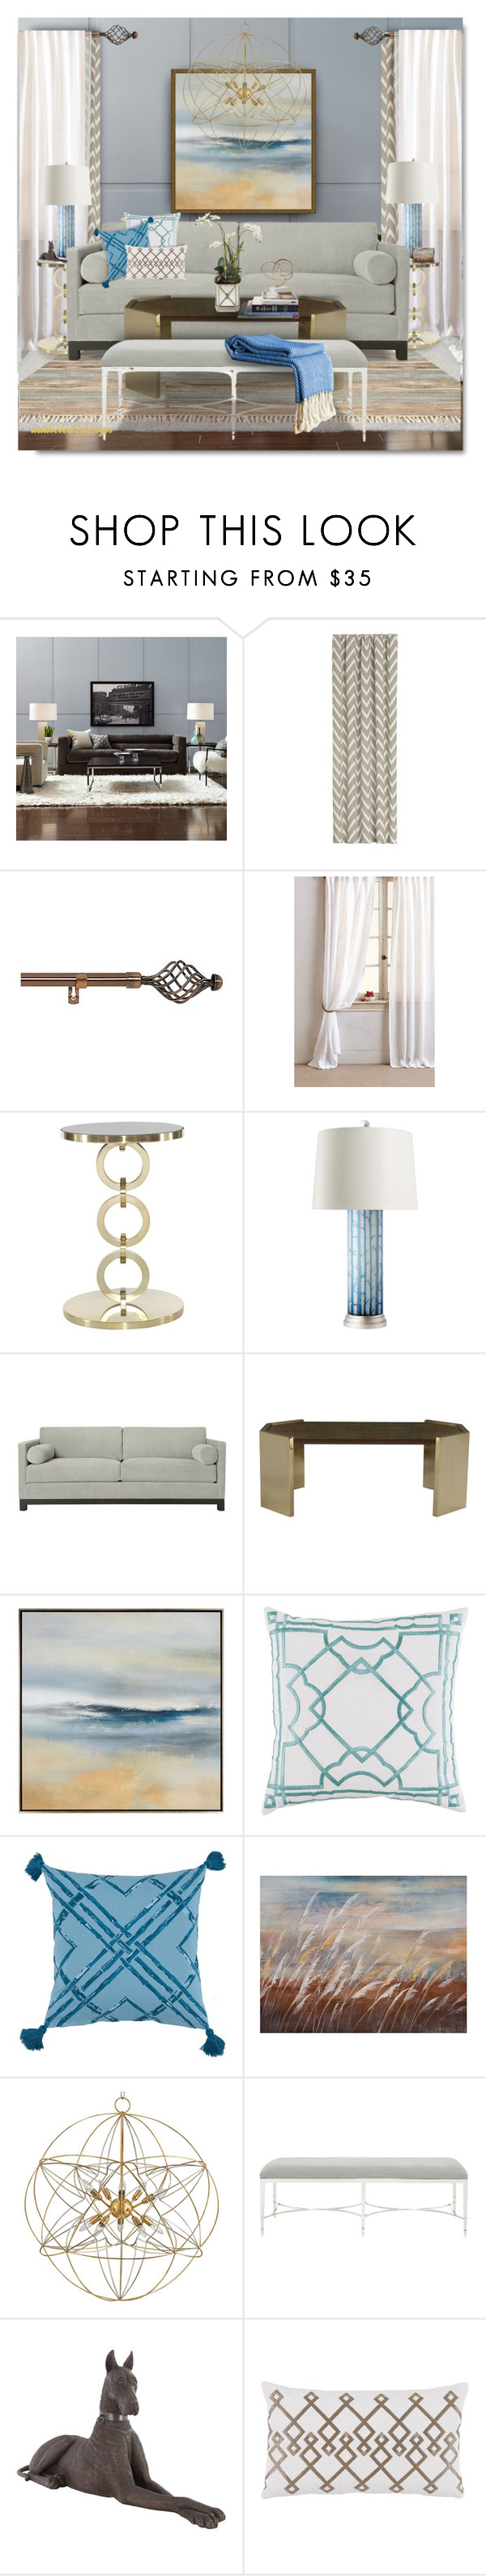 """..Change in Scenery!!!"" by addicted2design ❤ liked on Polyvore featuring interior, interiors, interior design, home, home decor, interior decorating, Mitchell Gold + Bob Williams, Crate and Barrel, Achim and Everest"